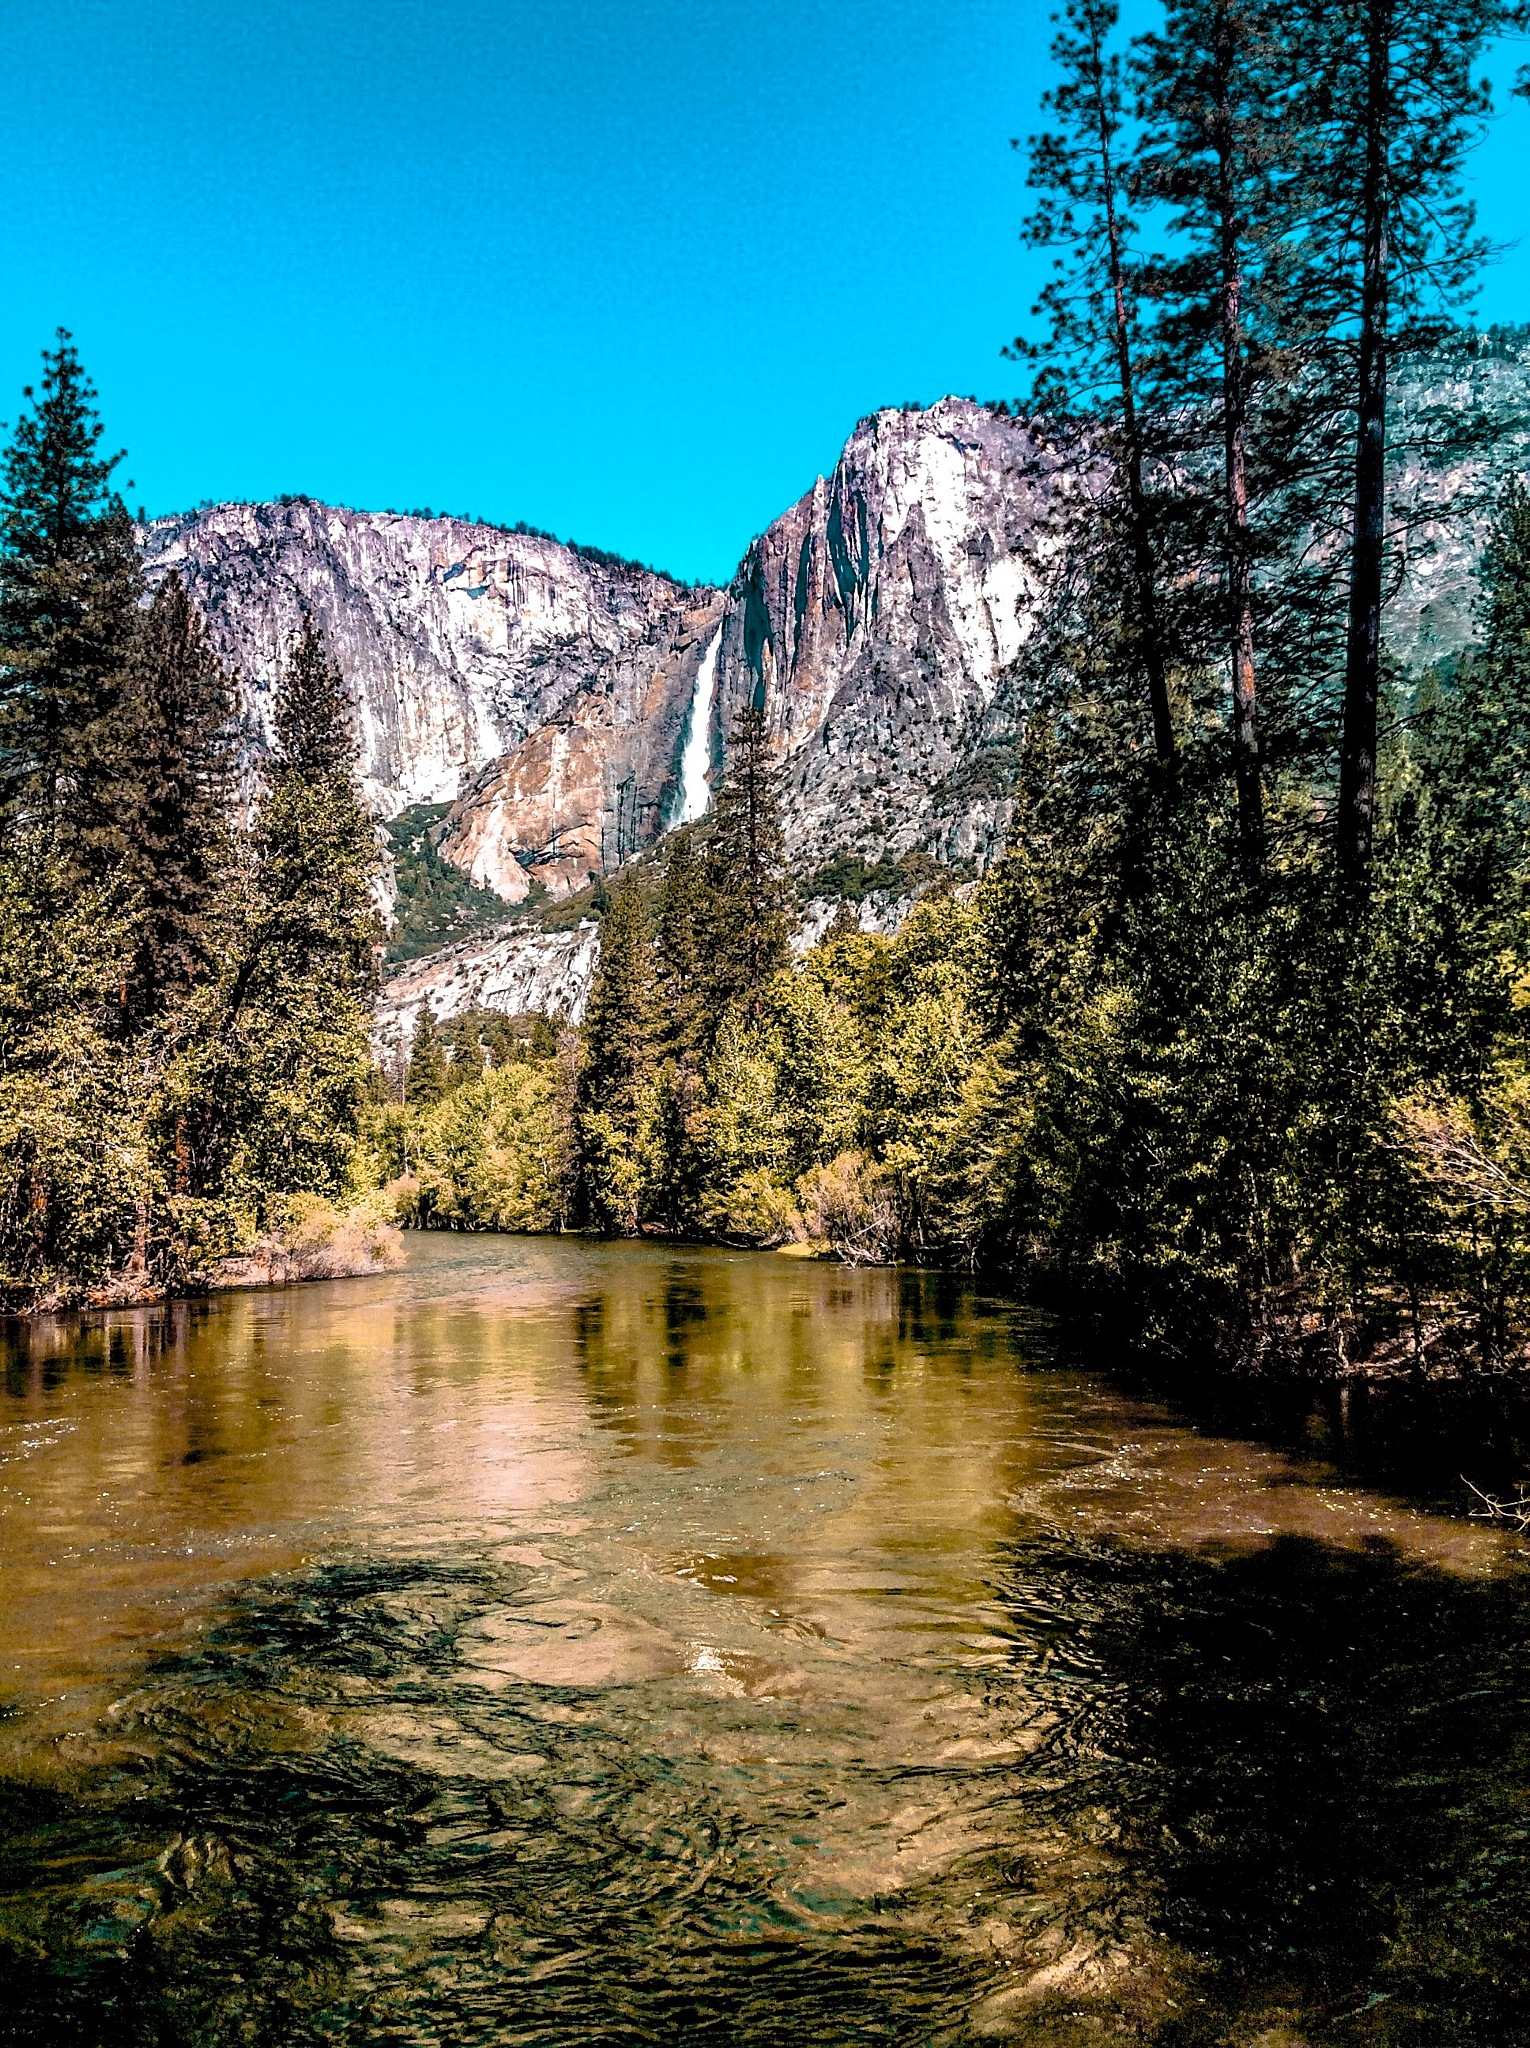 Spent the day exploring Yosemite Valley. Could honestly spend a week here and still need more time. by Wild Heart Adventurers